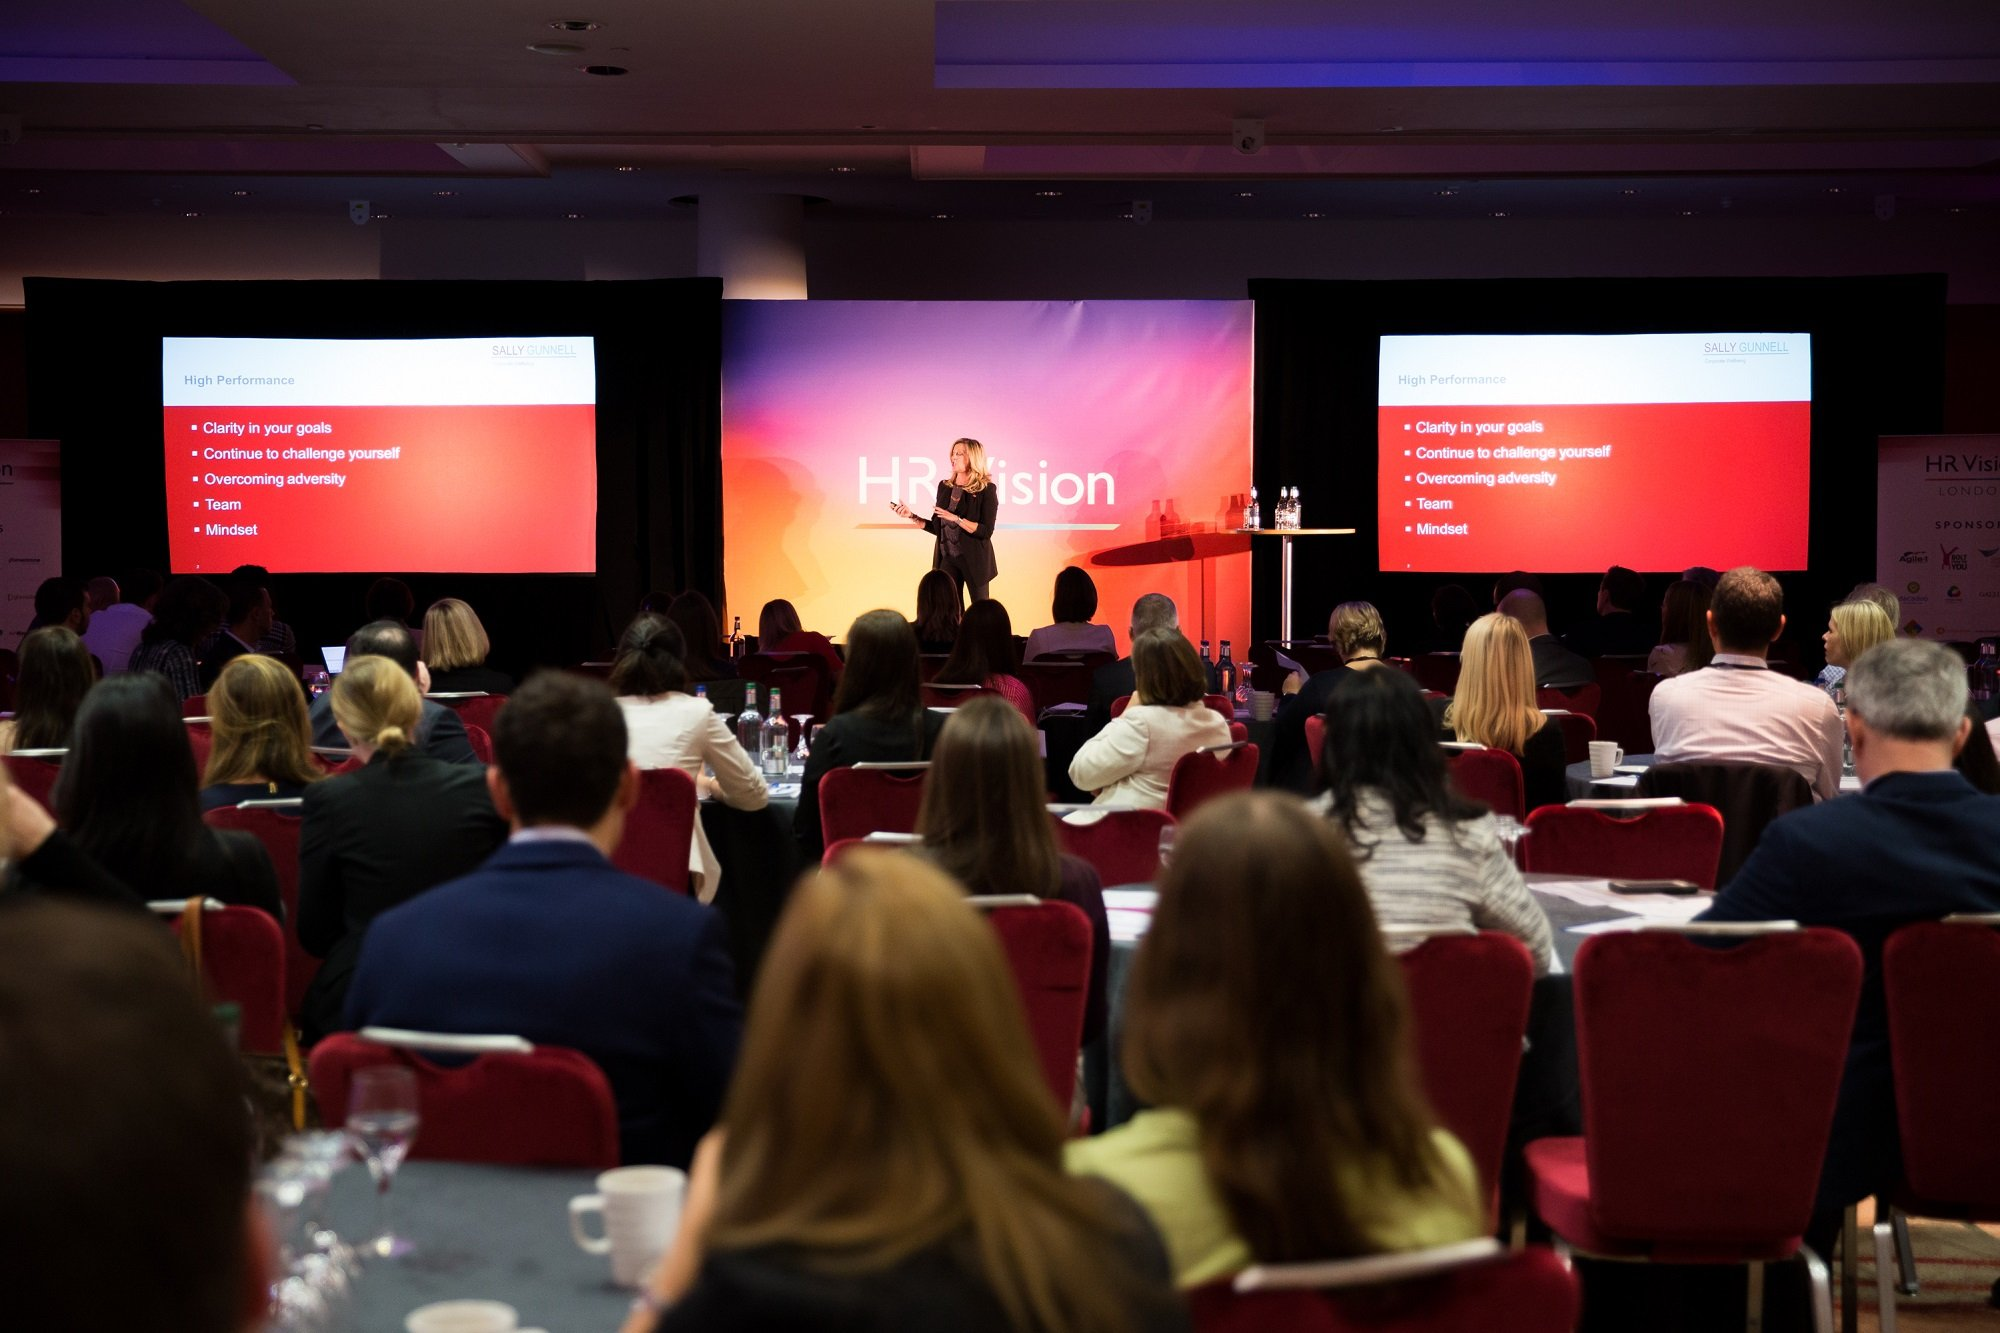 alphagamma 46 best hr conferences to attend in 2018 hr vision conference entrepreneurship human resources